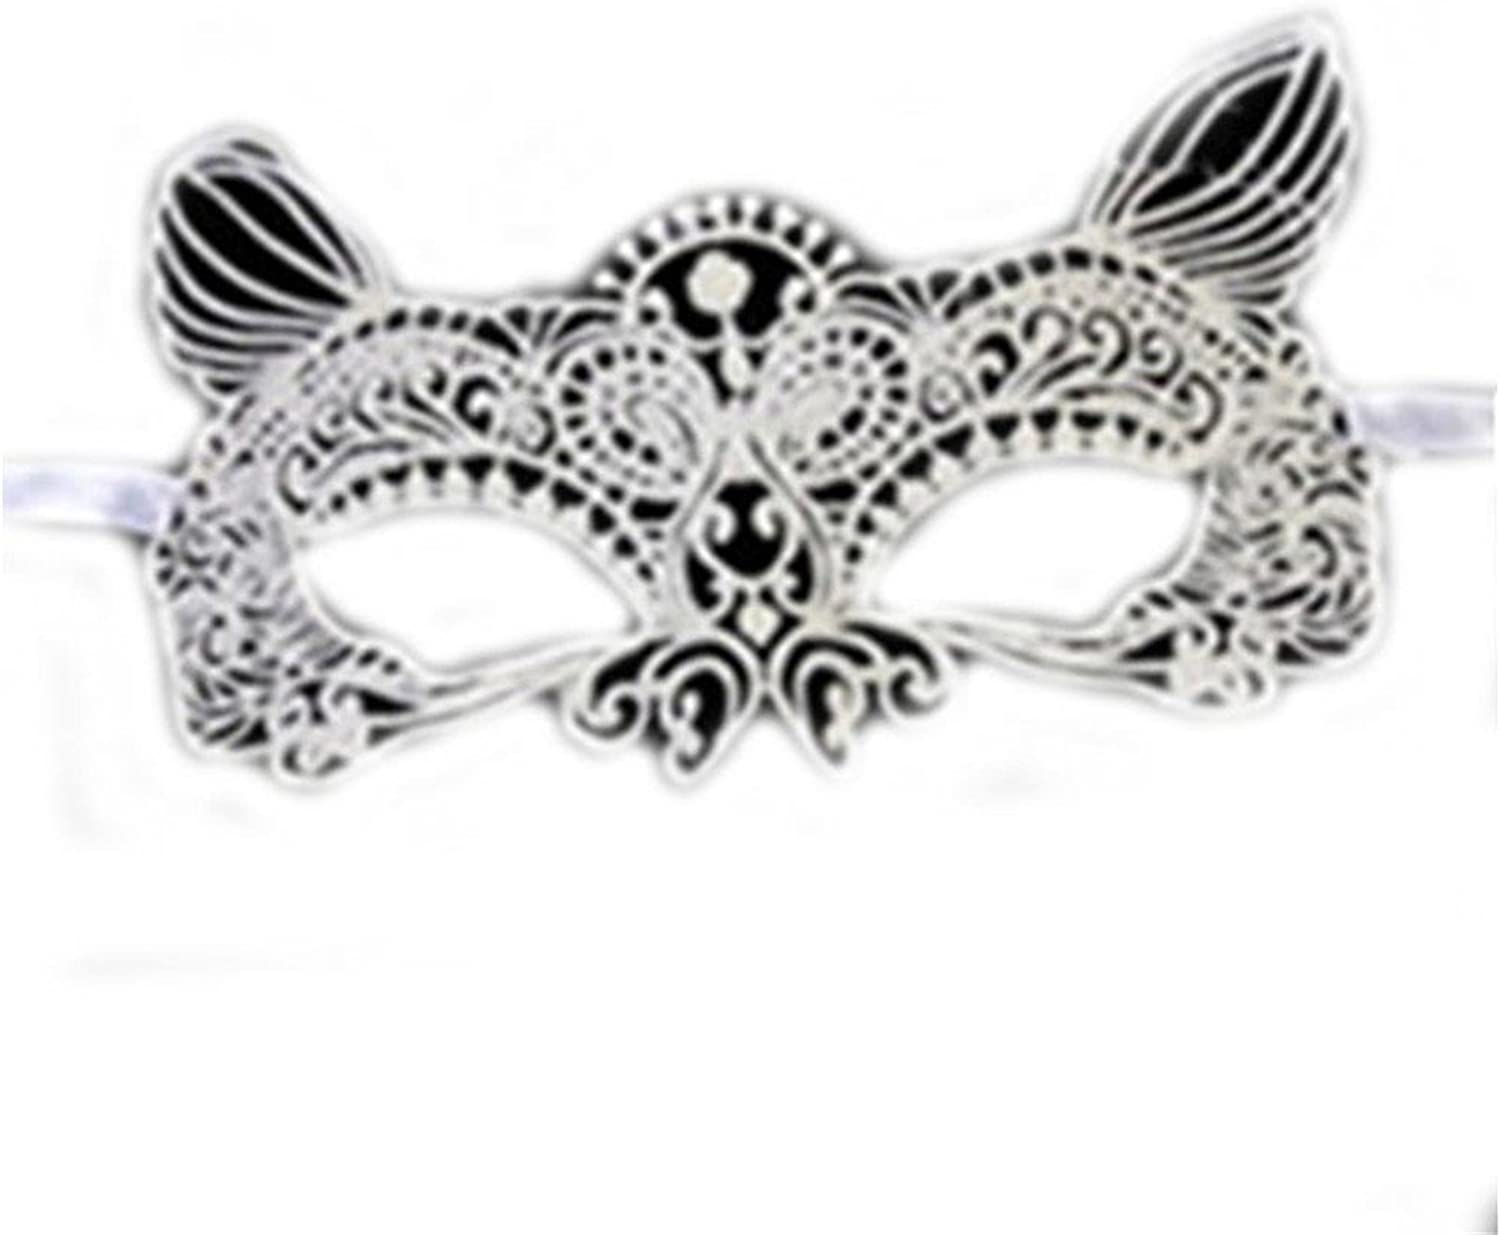 Mardi Gras Party Masquerade Mask,Black lace mask Female Openwork Dance Party Sexy Adult Half face Halloween mask w14 Prom Masks